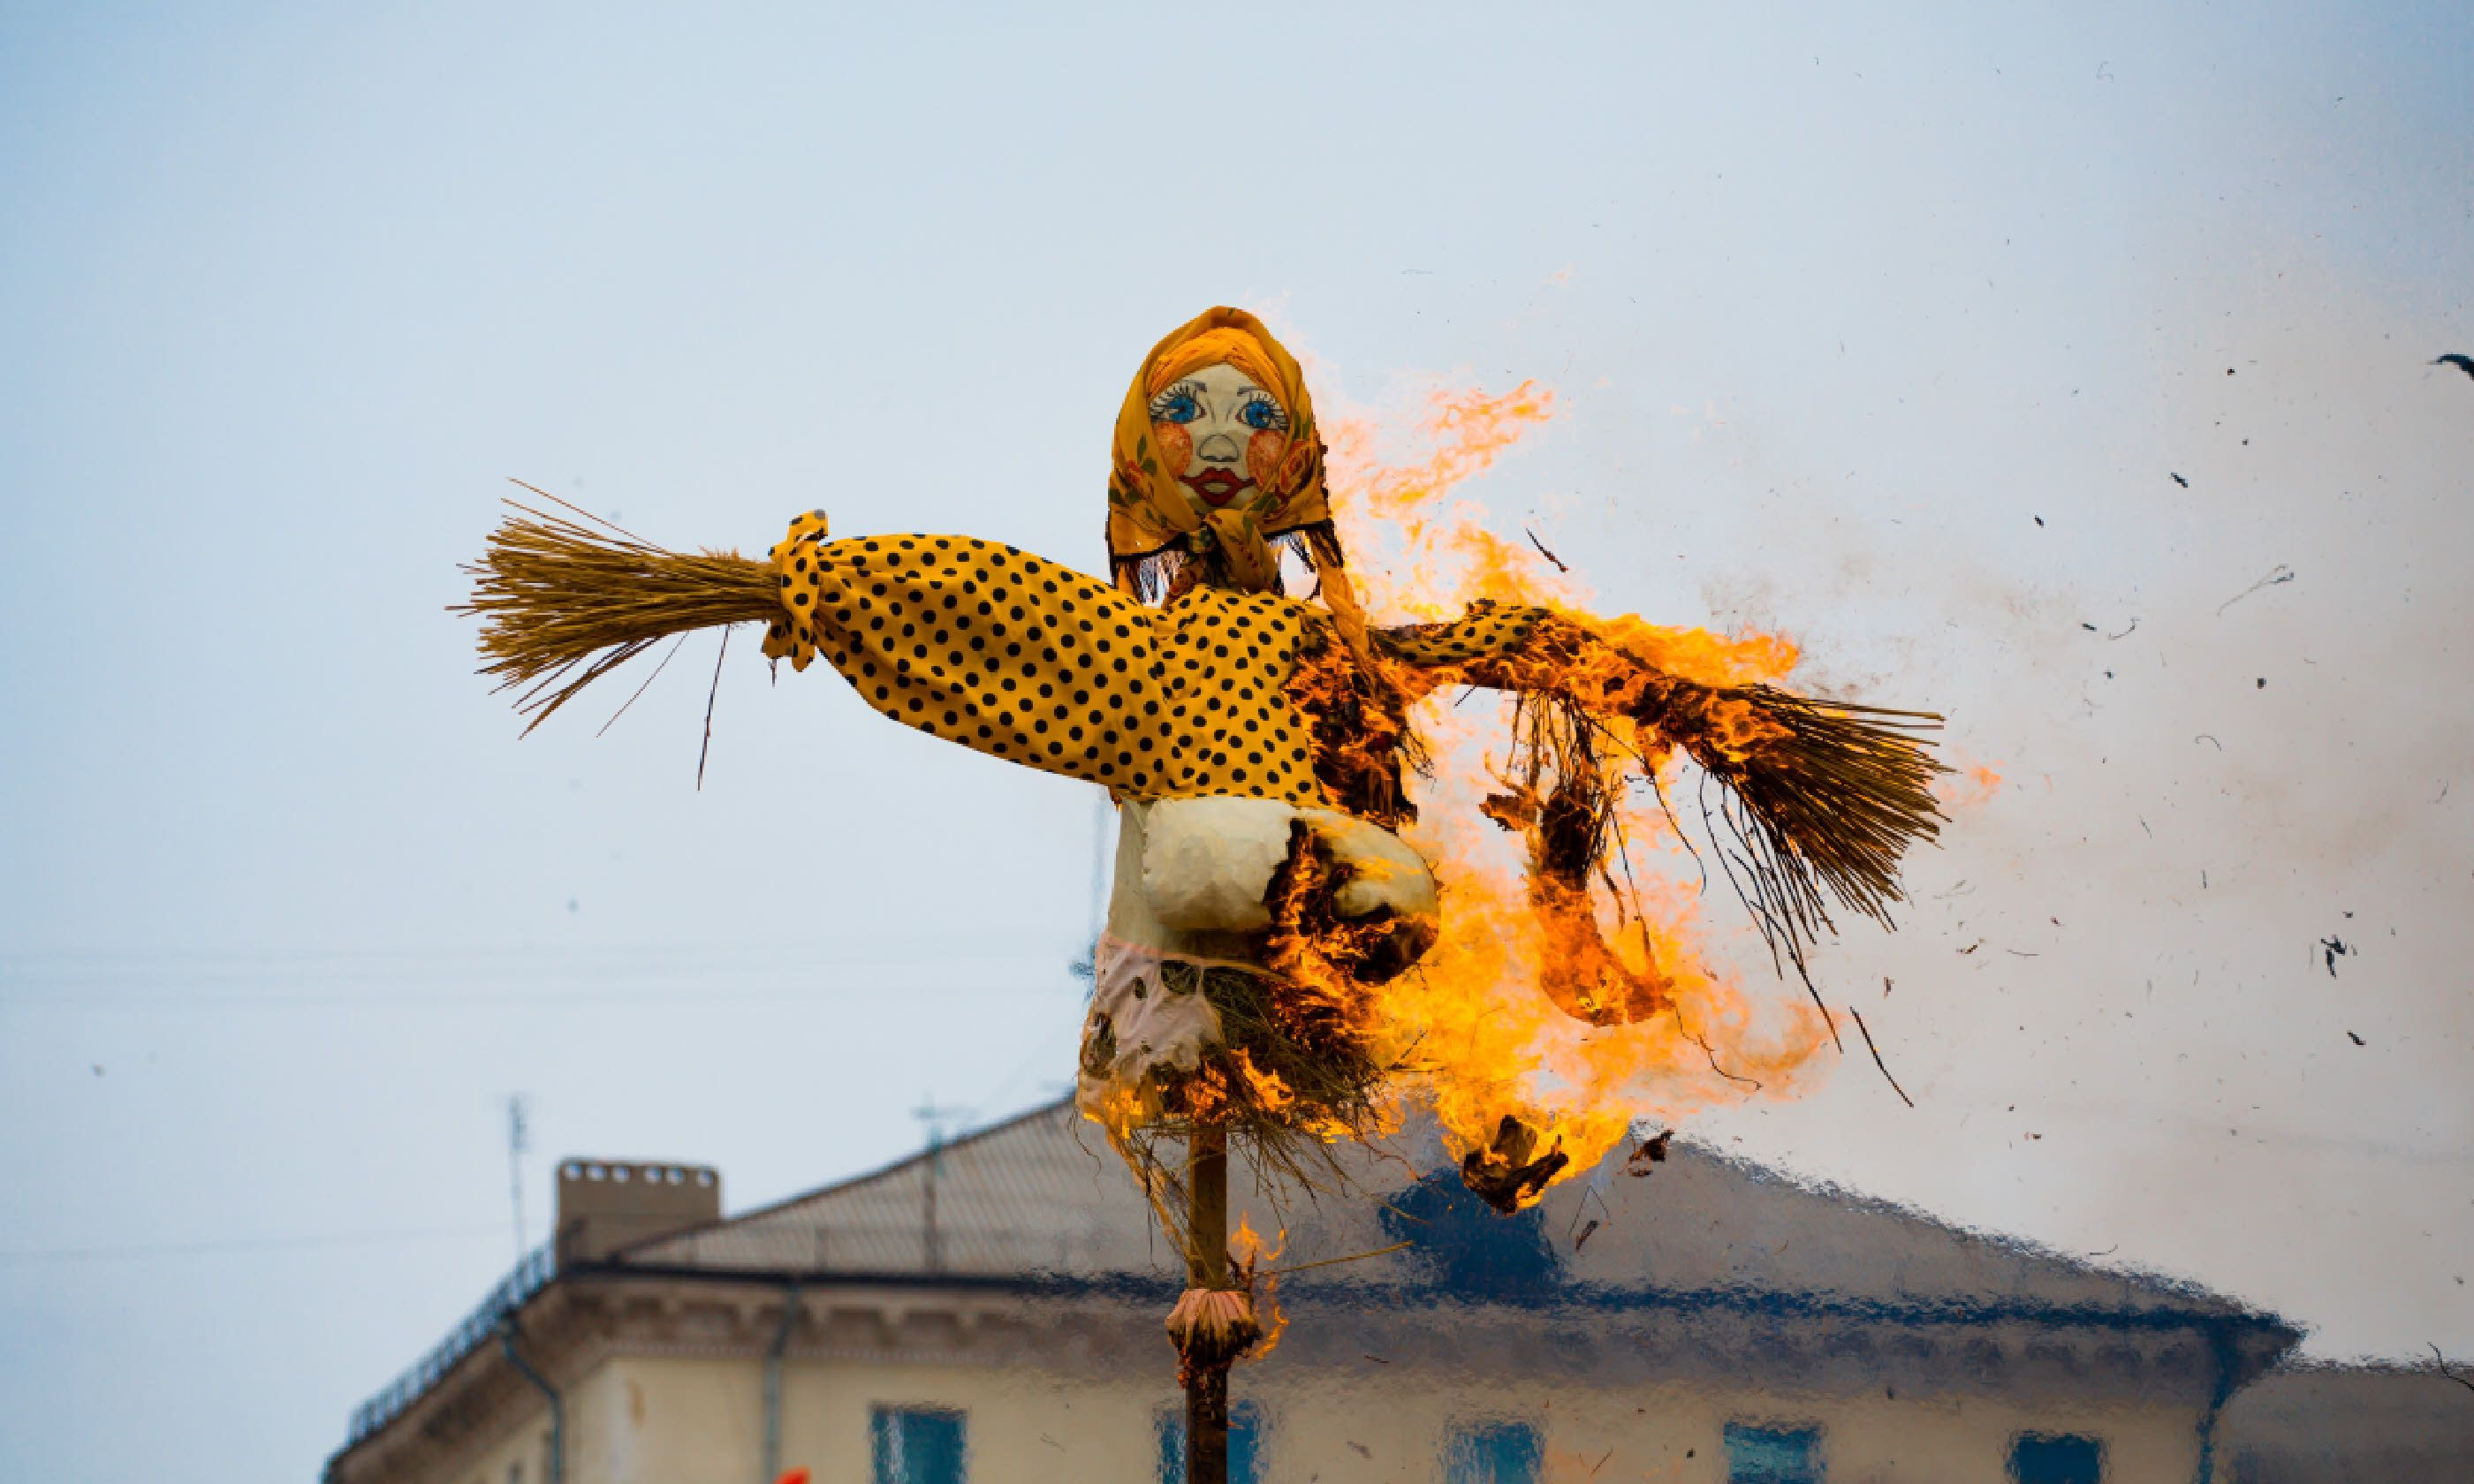 Burning effigy (Shutterstock)